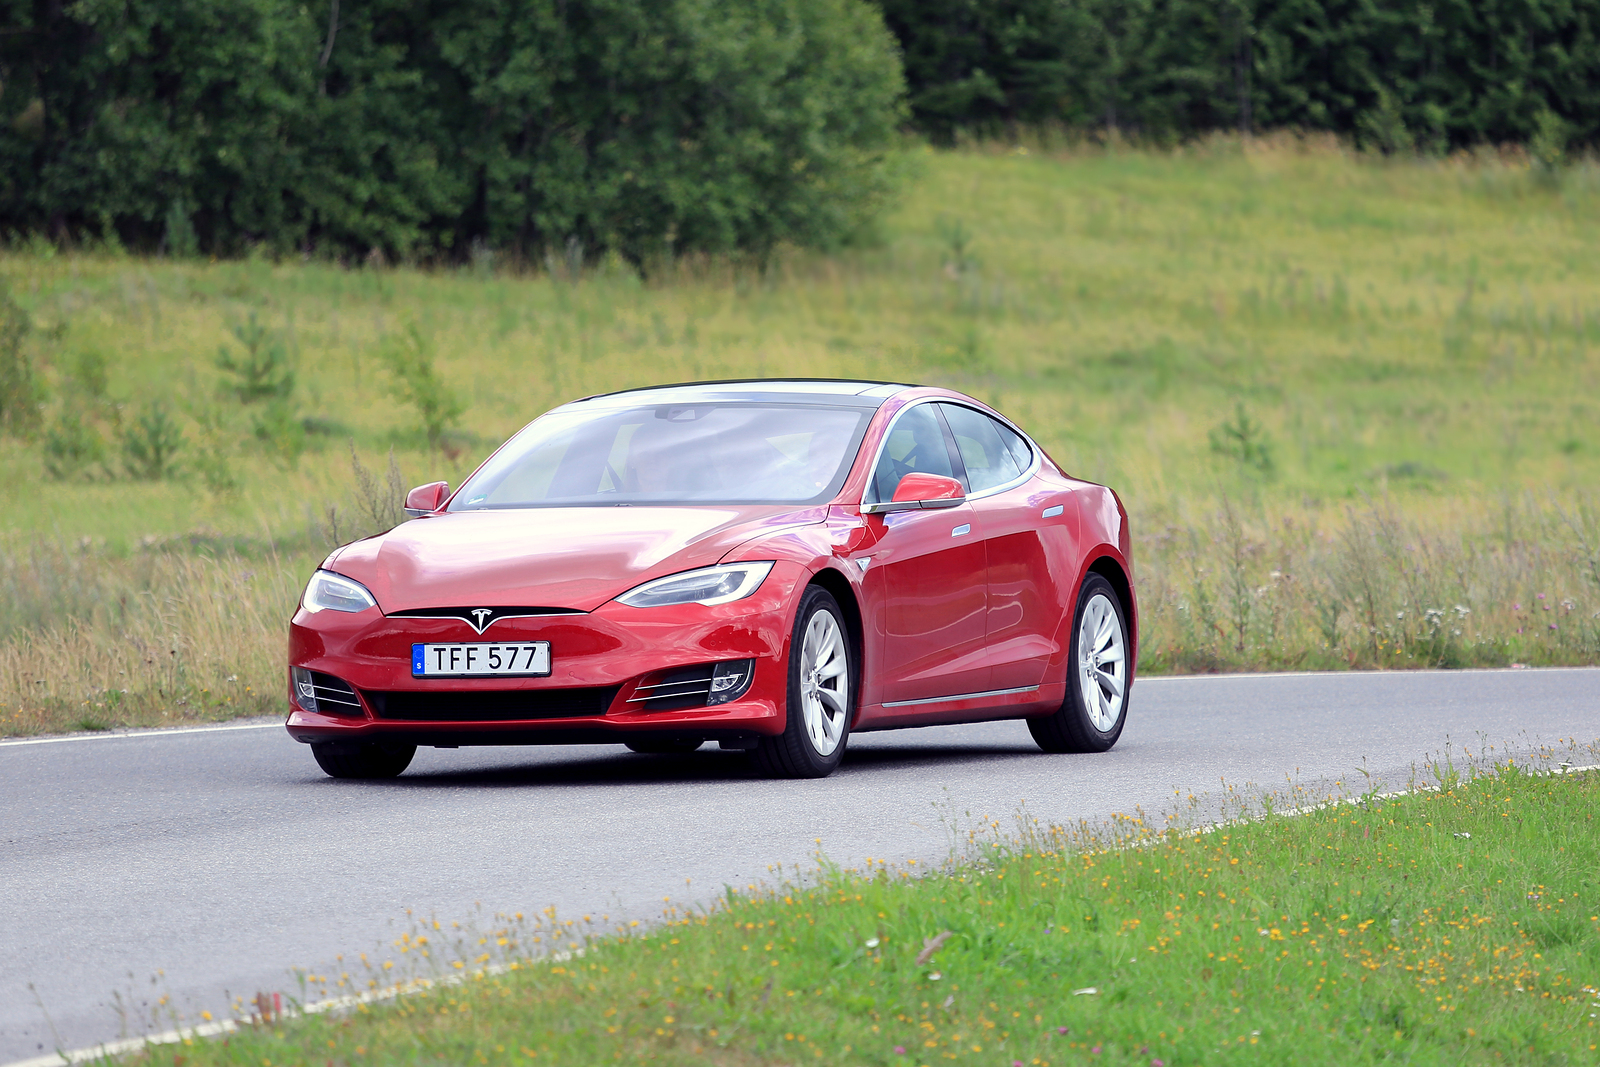 New Production Cars With The Fastest 0 60 Times